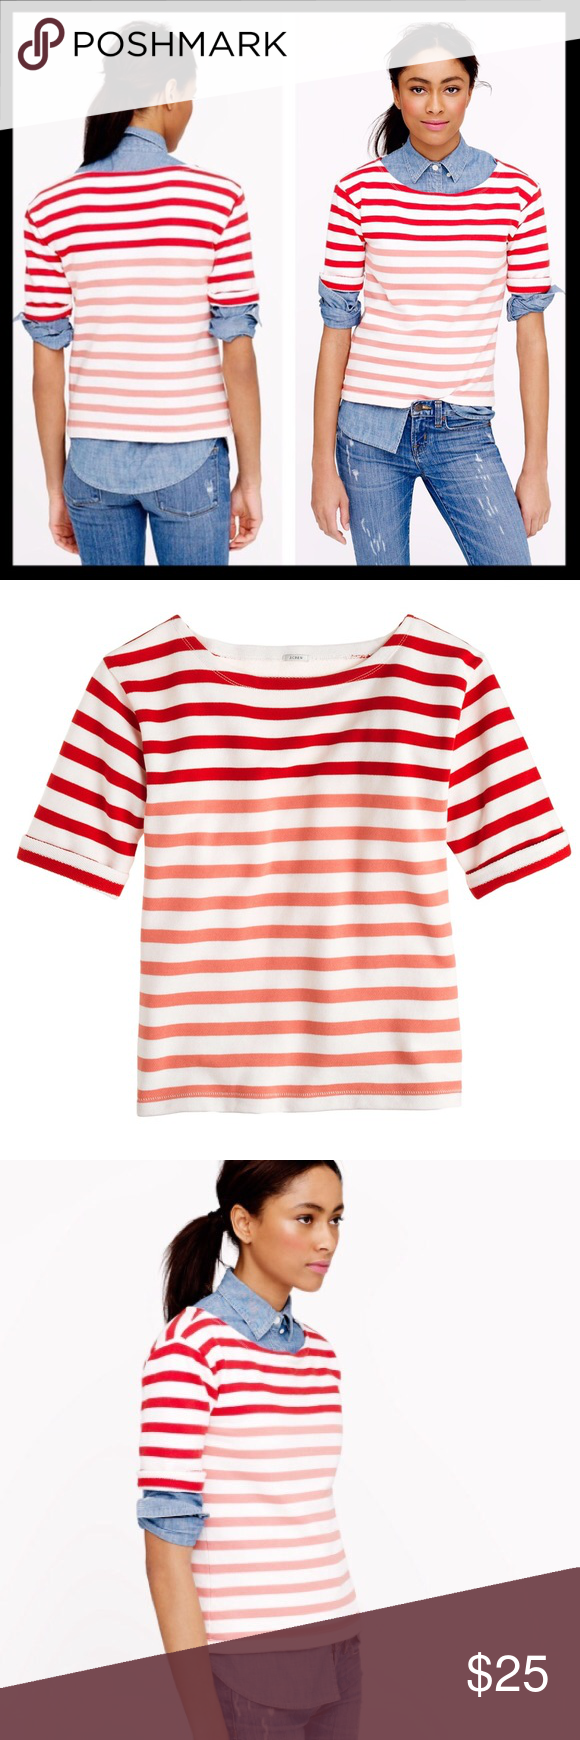 """j. crew // rugby stripe terry coral sweatshirt tee Our designers combined a lightweight sweatshirt fleece with an elbow-sleeve sailor tee to create this cozy-cool piece that goes from city streets to breezy beaches in a flash. (Bonus points for the block stripe, a graphic new twist on colorblocking.) Slightly boxy fit. Cotton. Machine wash. Great preowned condition. Bust is 18"""" across lying flat. Length is 22.5"""" from top of shoulder. J. Crew Tops Tees - Short Sleeve"""